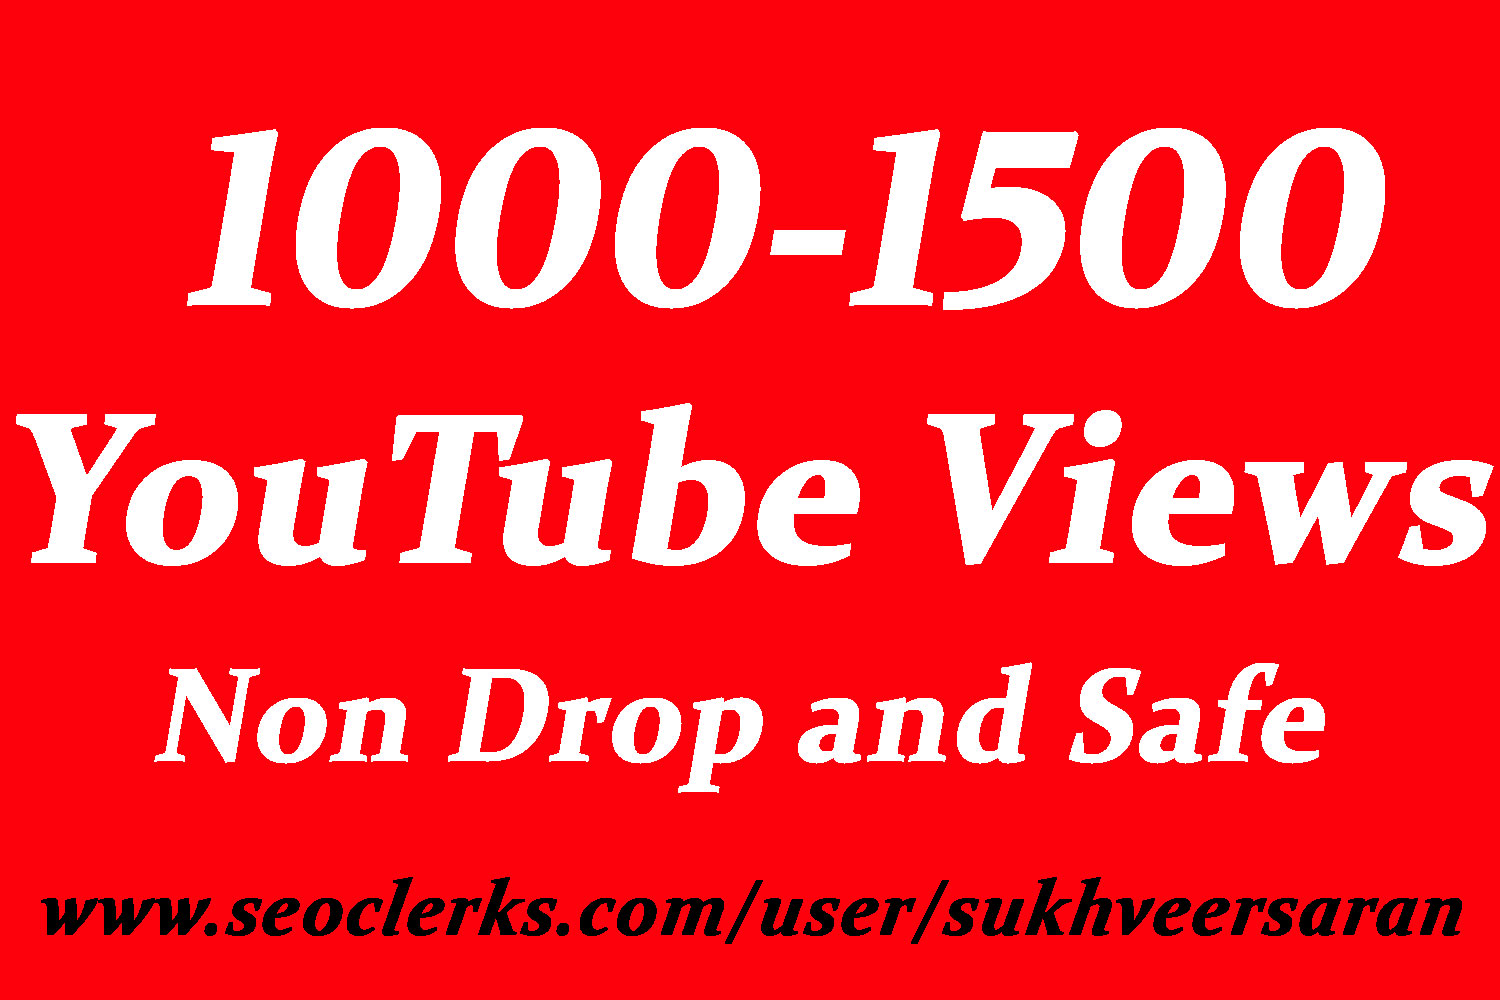 Get 1000 To 1500 High Quality Views with choice Extra service 2000, 3000, 4000, 5000, 6000, 7000, 8000, 9000,10000, 20000 and 50,000, 50k, 100,000 100k Views